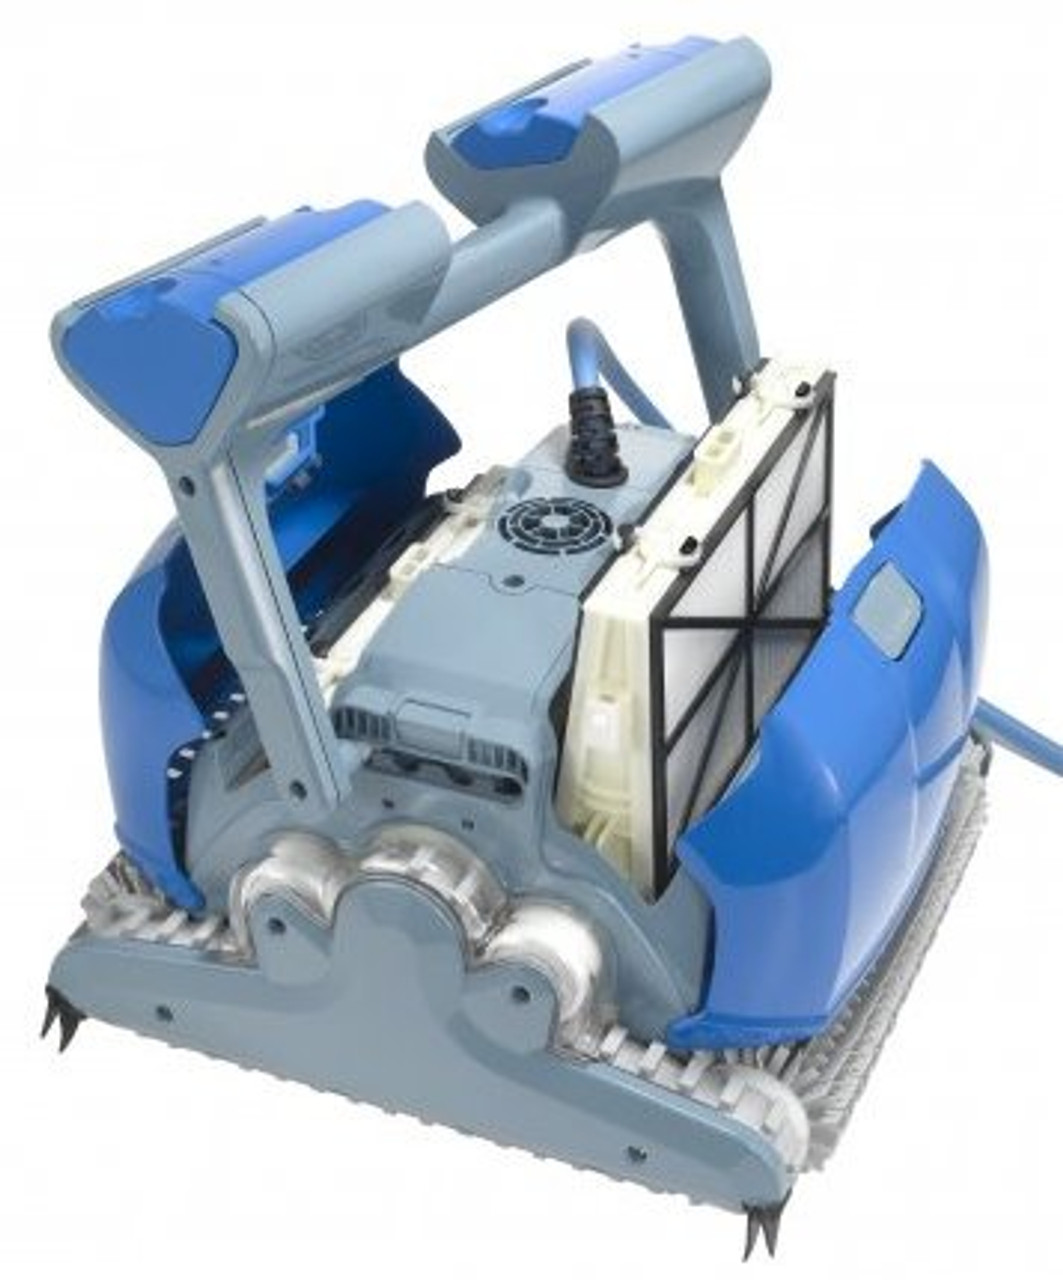 Dolphin Supreme M400 Pro Automatic Swimming Pool Cleaner with Covers Open Showing Filters